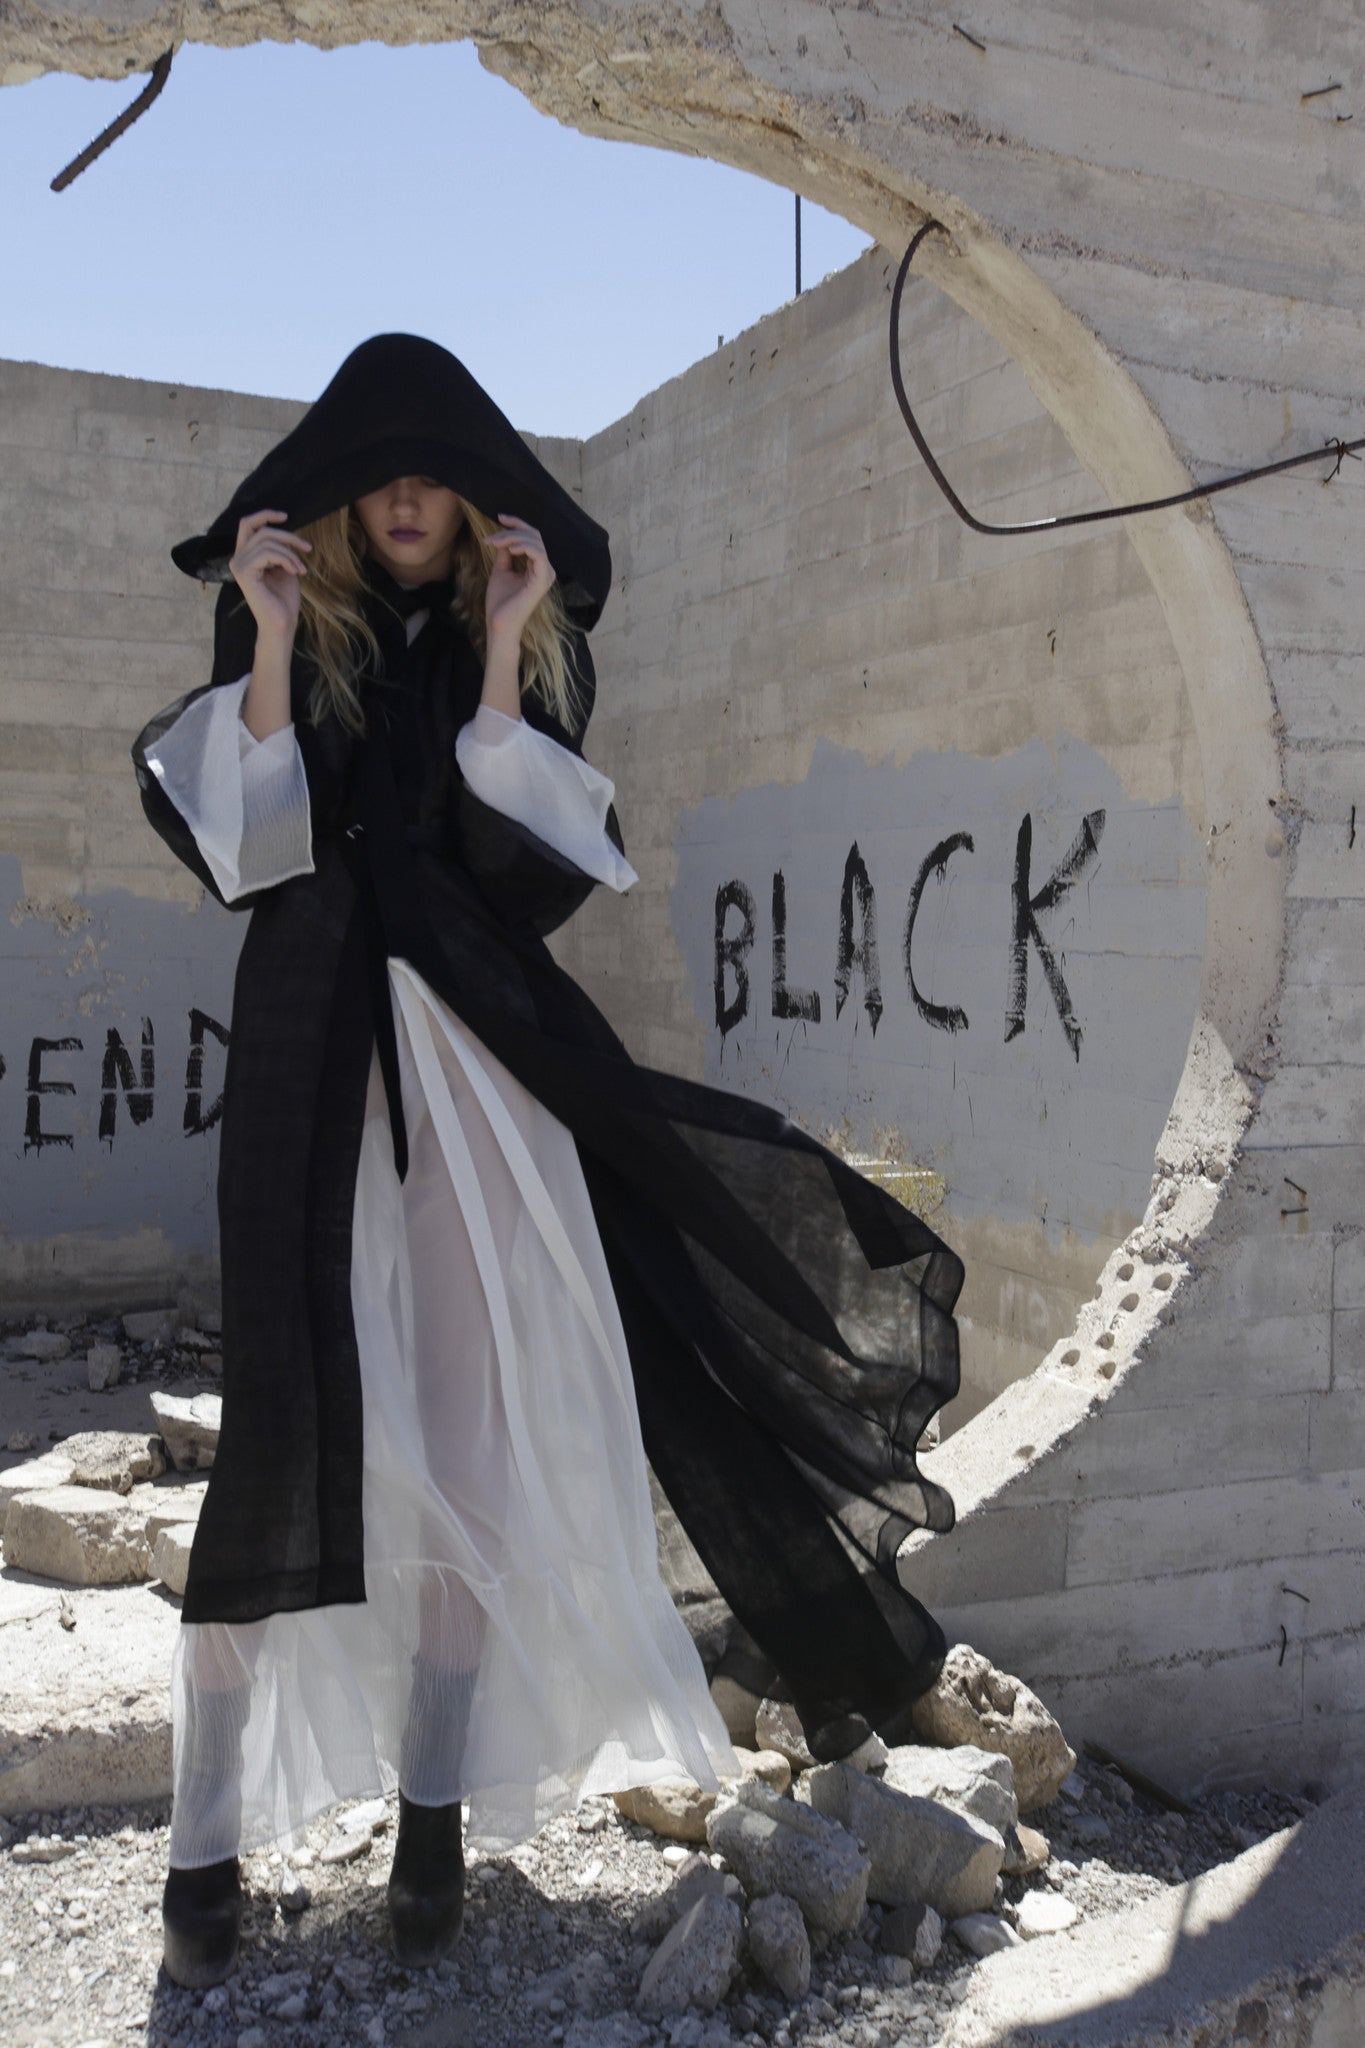 Maggie Laine IMG model Sheer Hood Hooded Cape Cloak White Sheer Dress Wendy Nichol Clothing Designer SS17 Fashion Runway Show Death Valley